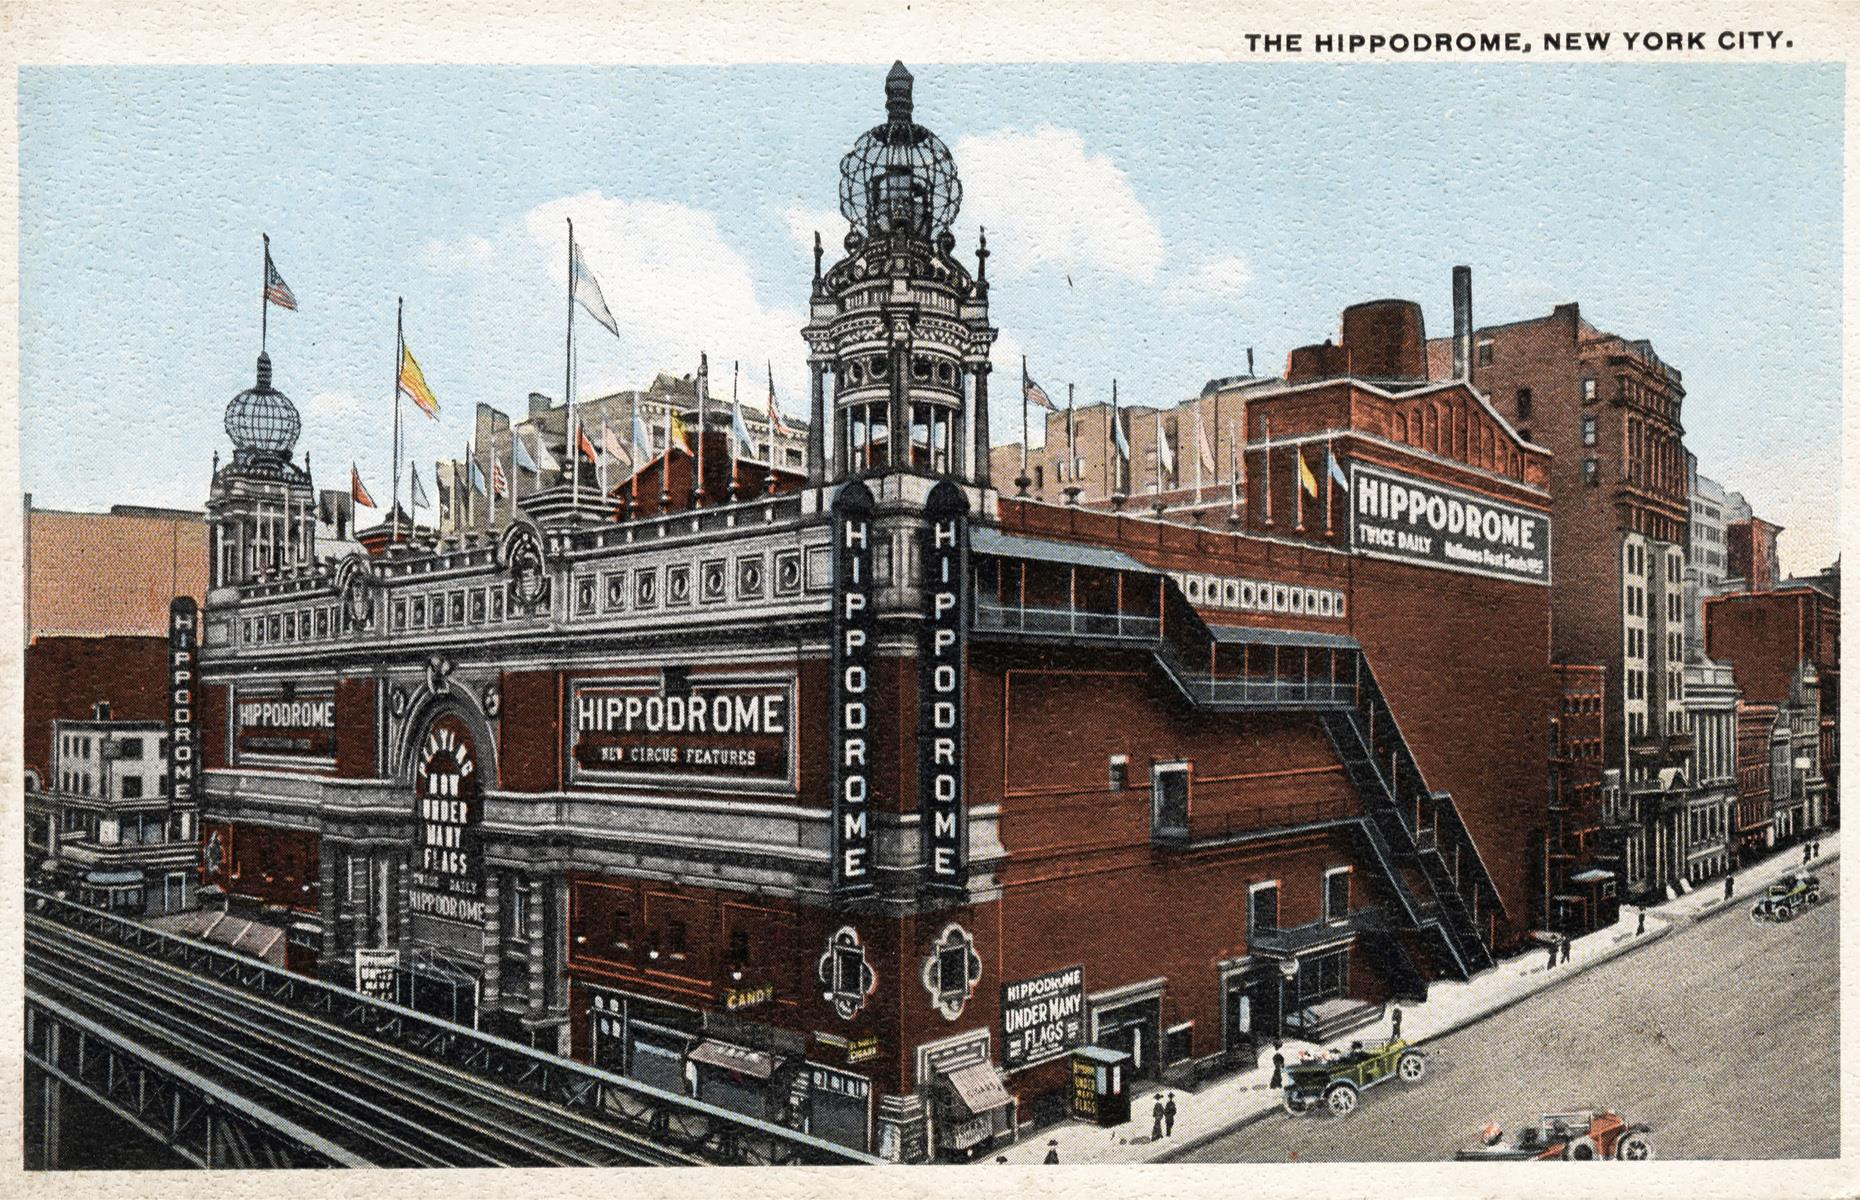 Slide 28 of 31: The Big Apple has more than its fair share of opulent theaters and the Hippodrome Theatre was no exception. It was the vision of architect Frederick Thompson and showman Elmer Dundy (the dream team behind Coney Island's dazzling Luna Park) and was finished in 1905. It was a behemoth among theaters too, with capacity for 5,000-plus people and a vast stage playing host to greats including Harry Houdini and plenty of circus animals.